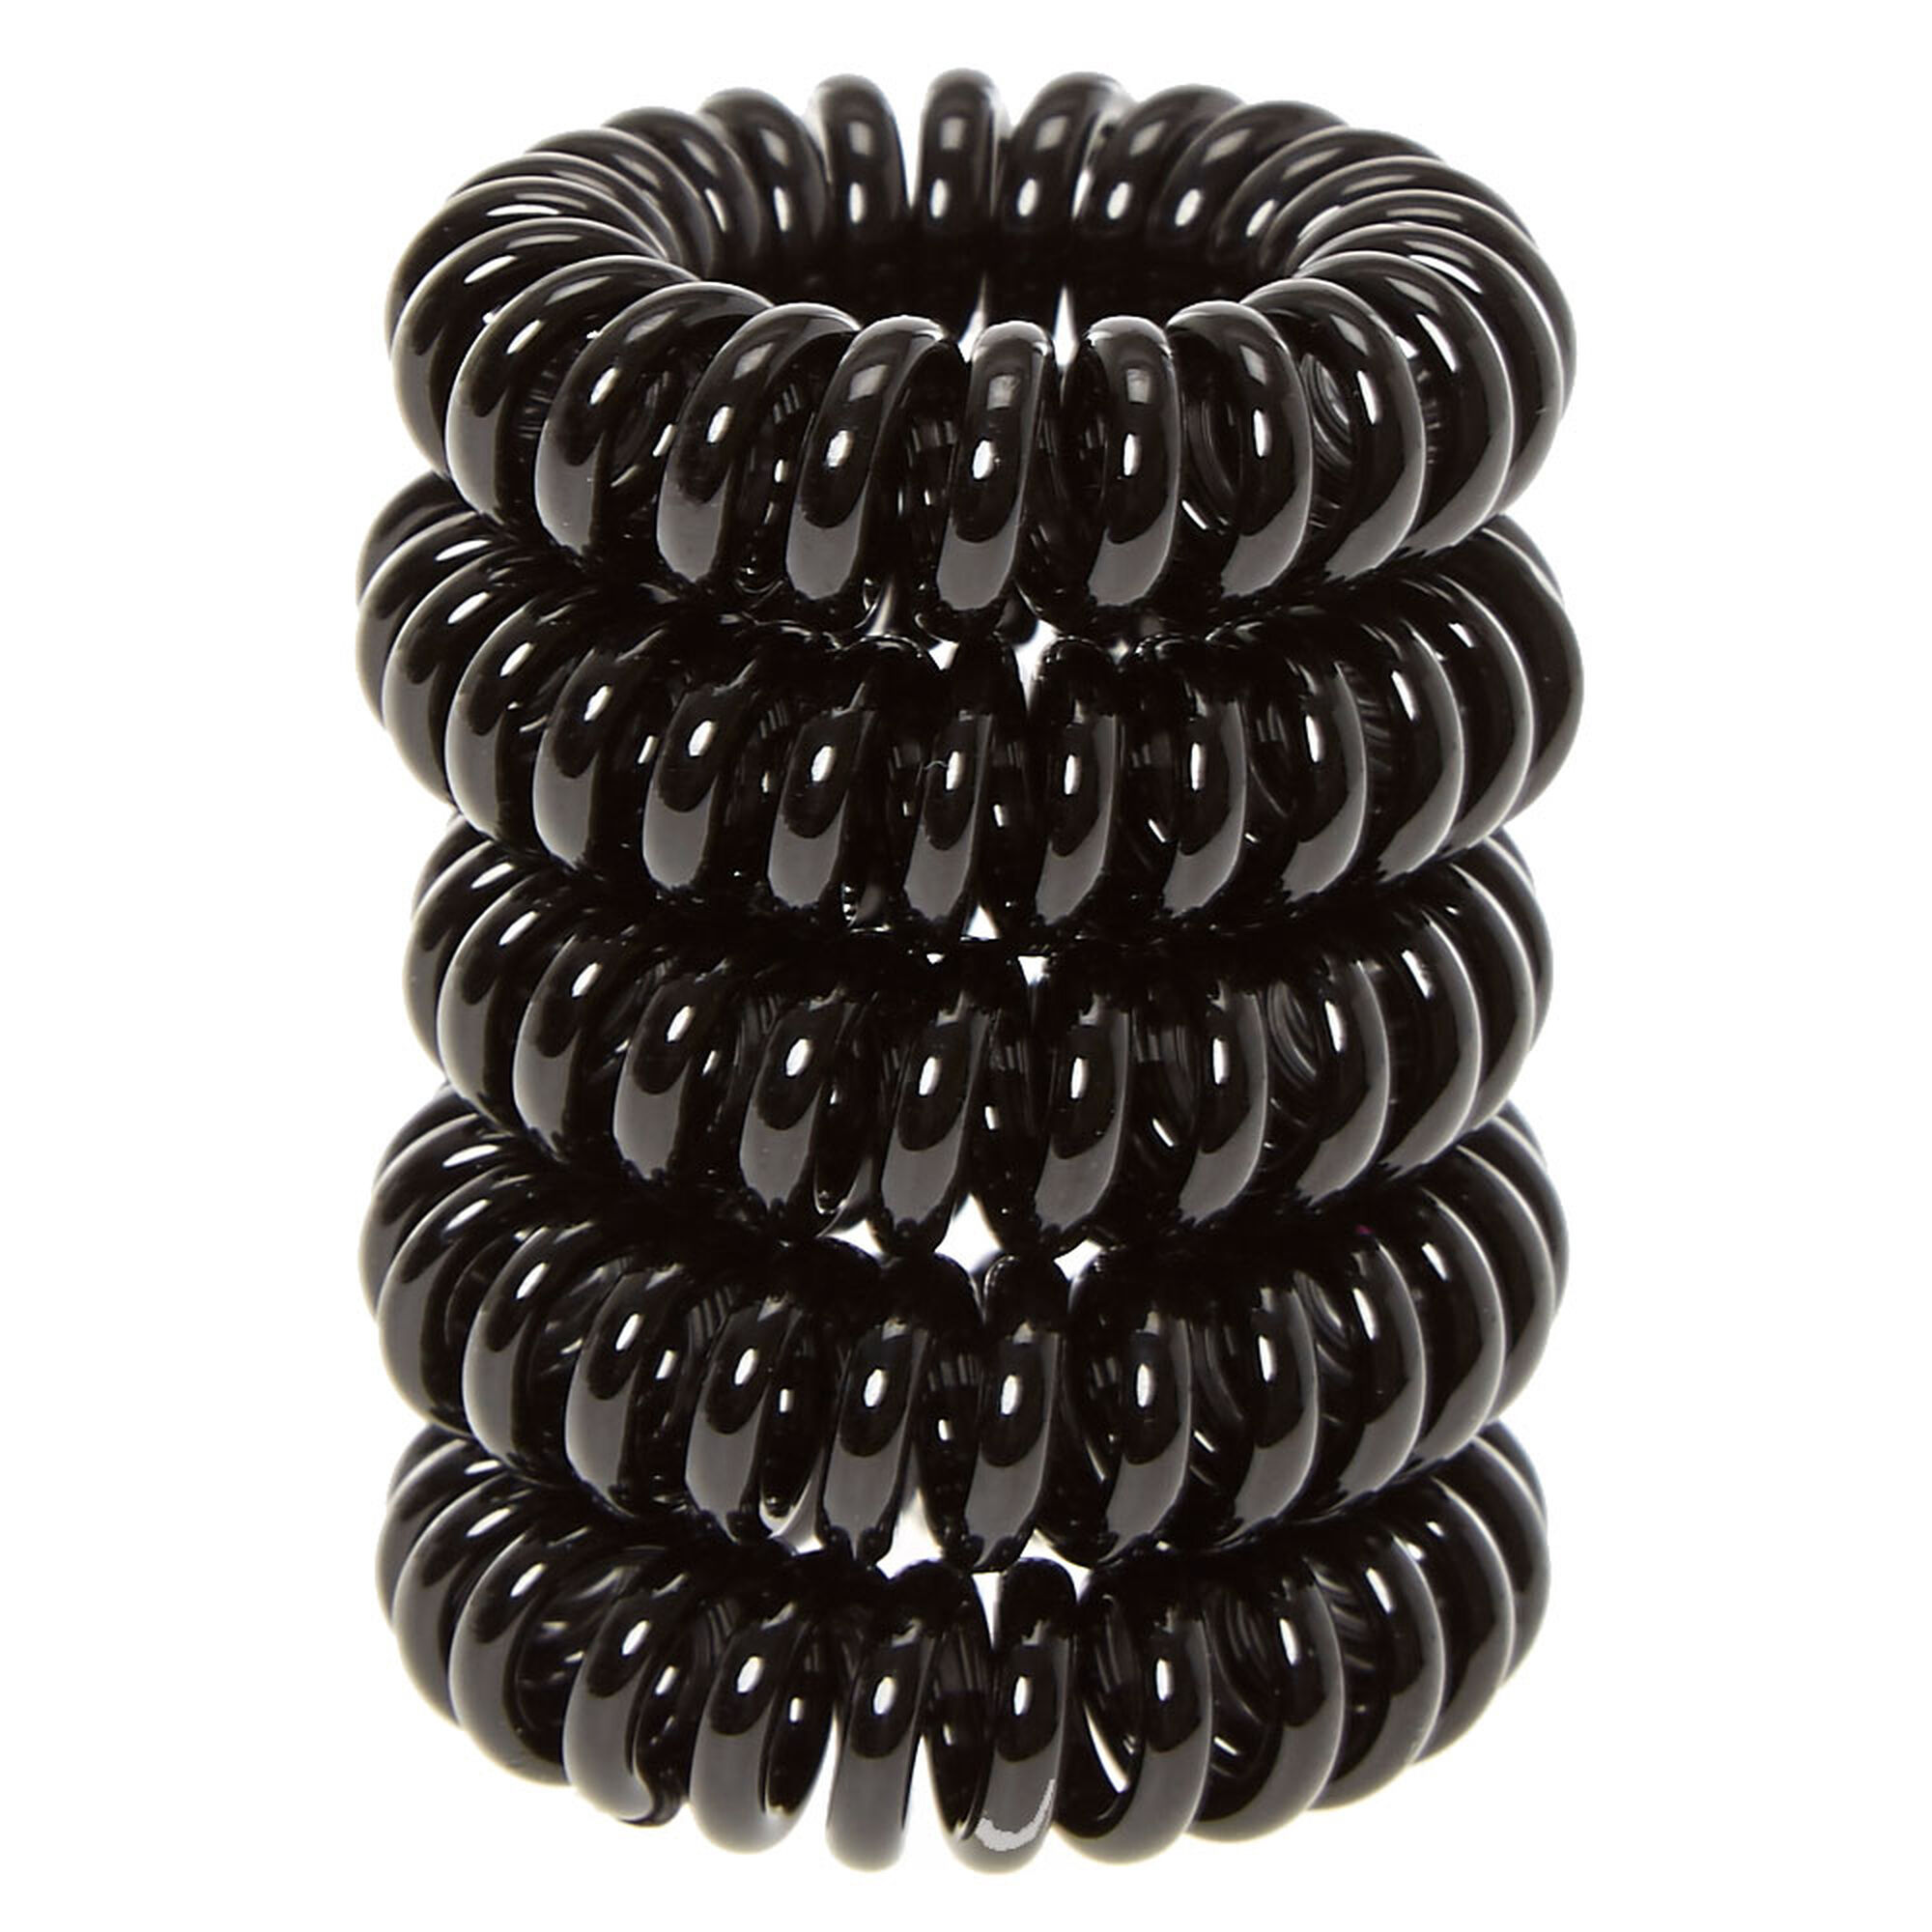 Spiral Hair Tie – The Perfect Ponytail Option